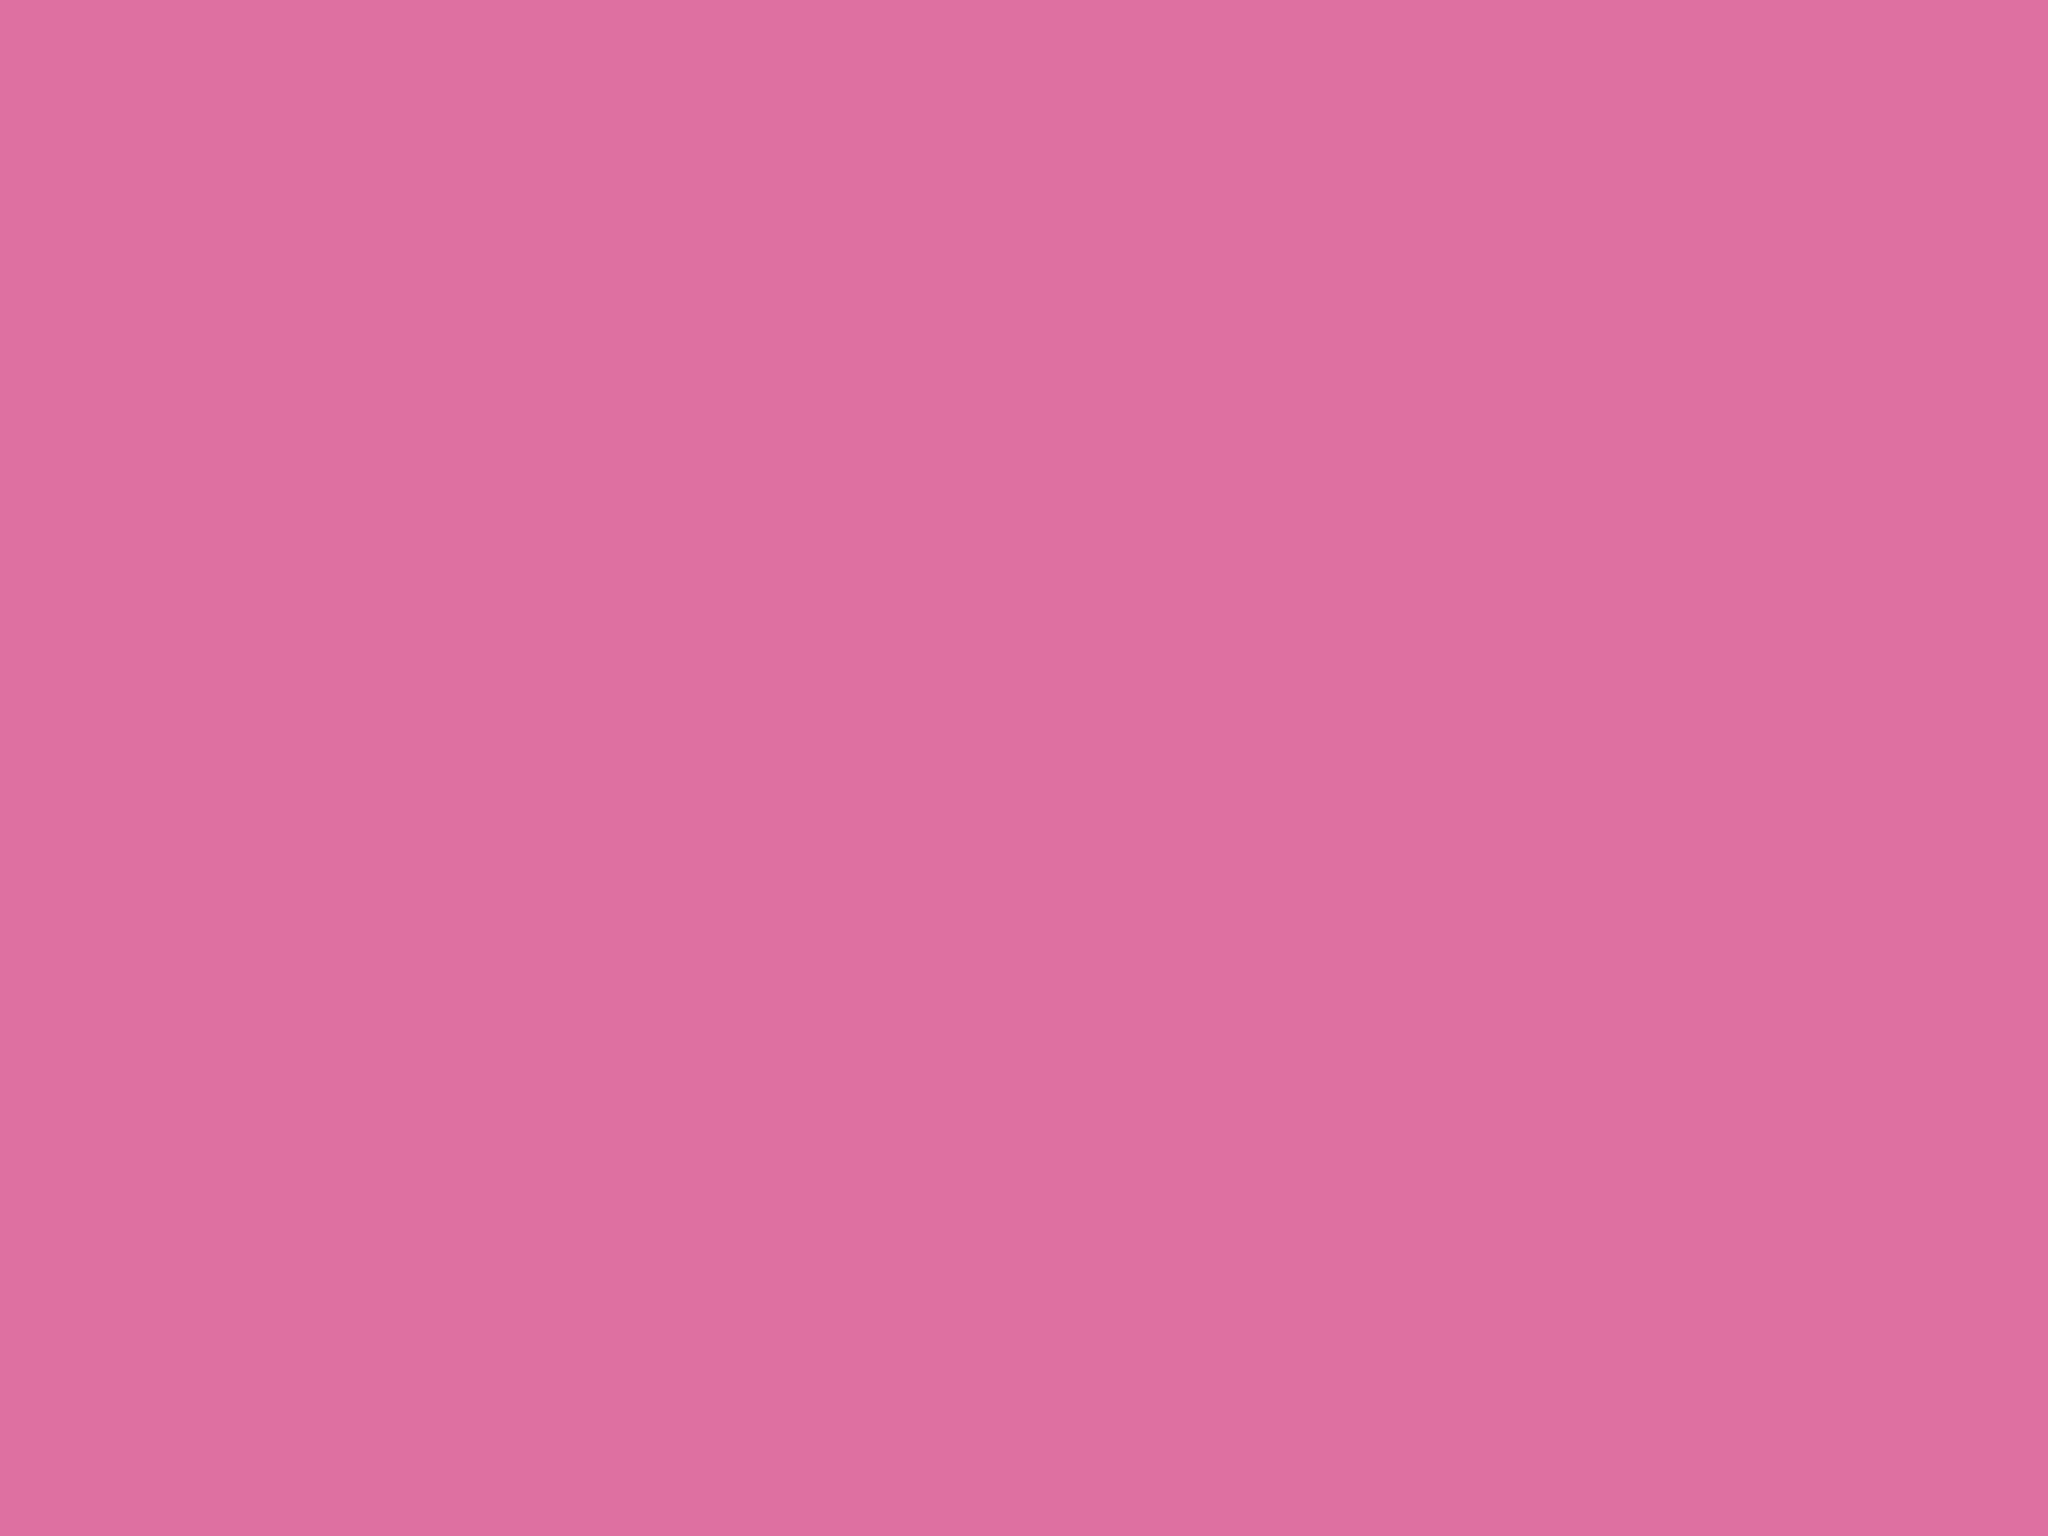 2048x1536 China Pink Solid Color Background